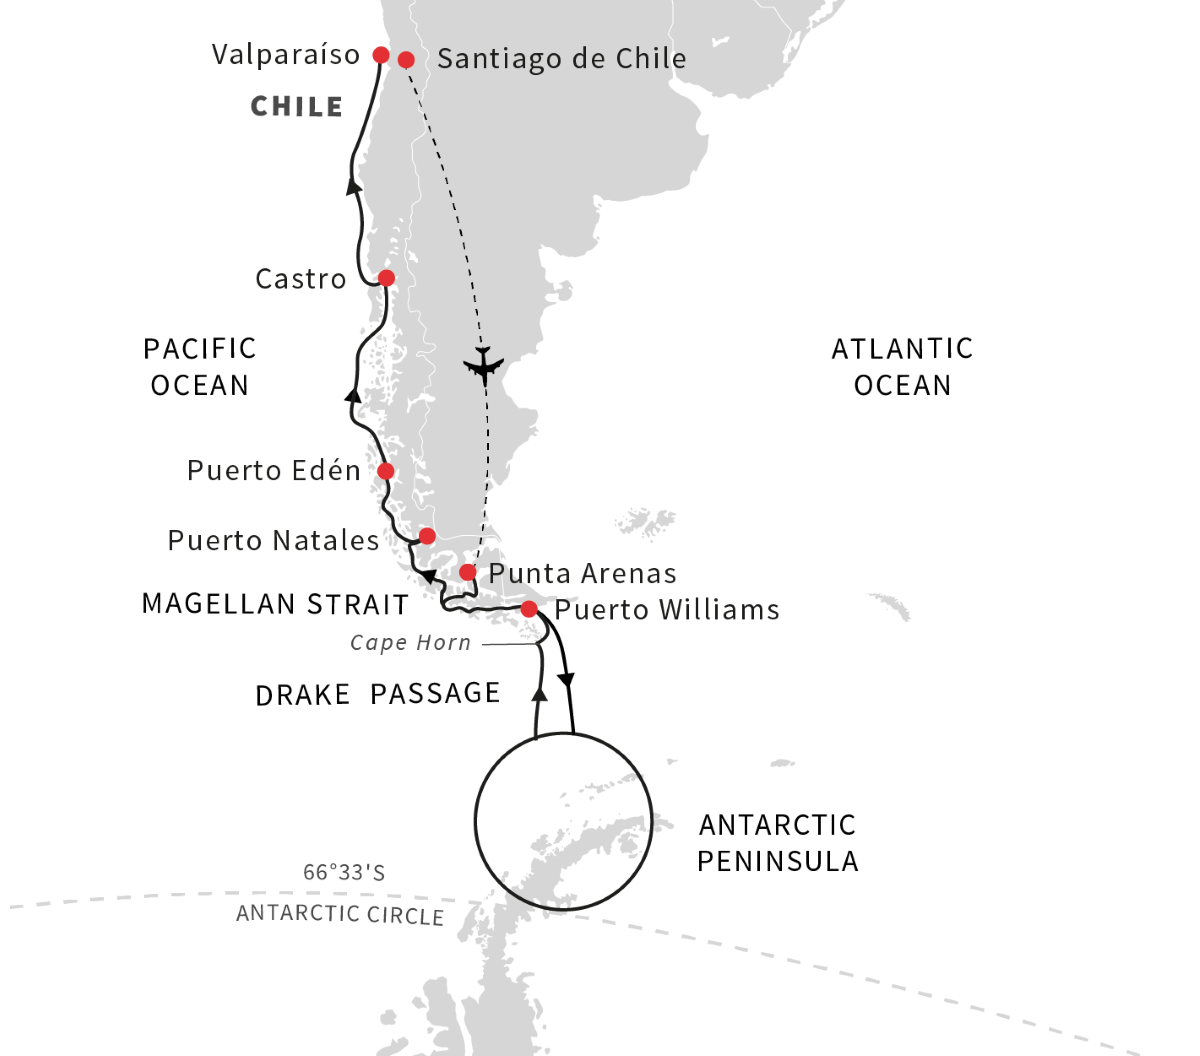 Antarctica, Patagonia, Chilean Fjords - Voyage of Discovery (Northbound)